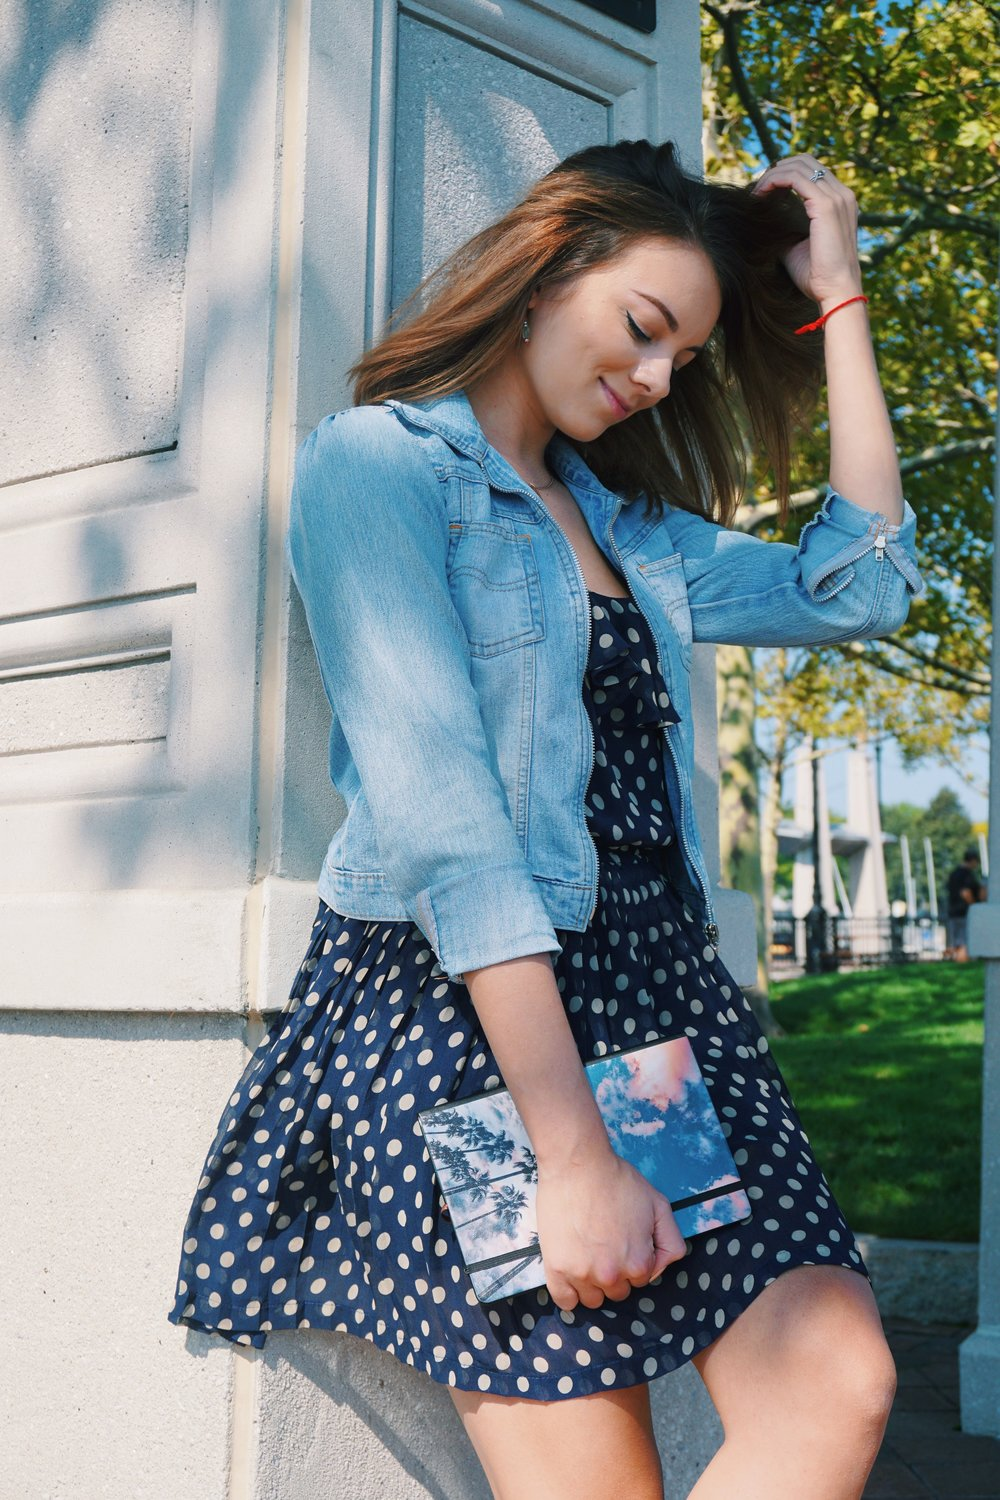 A beauty blogger standing in the park, wearing a summer polka dot dress, and a washed out denim jacket.